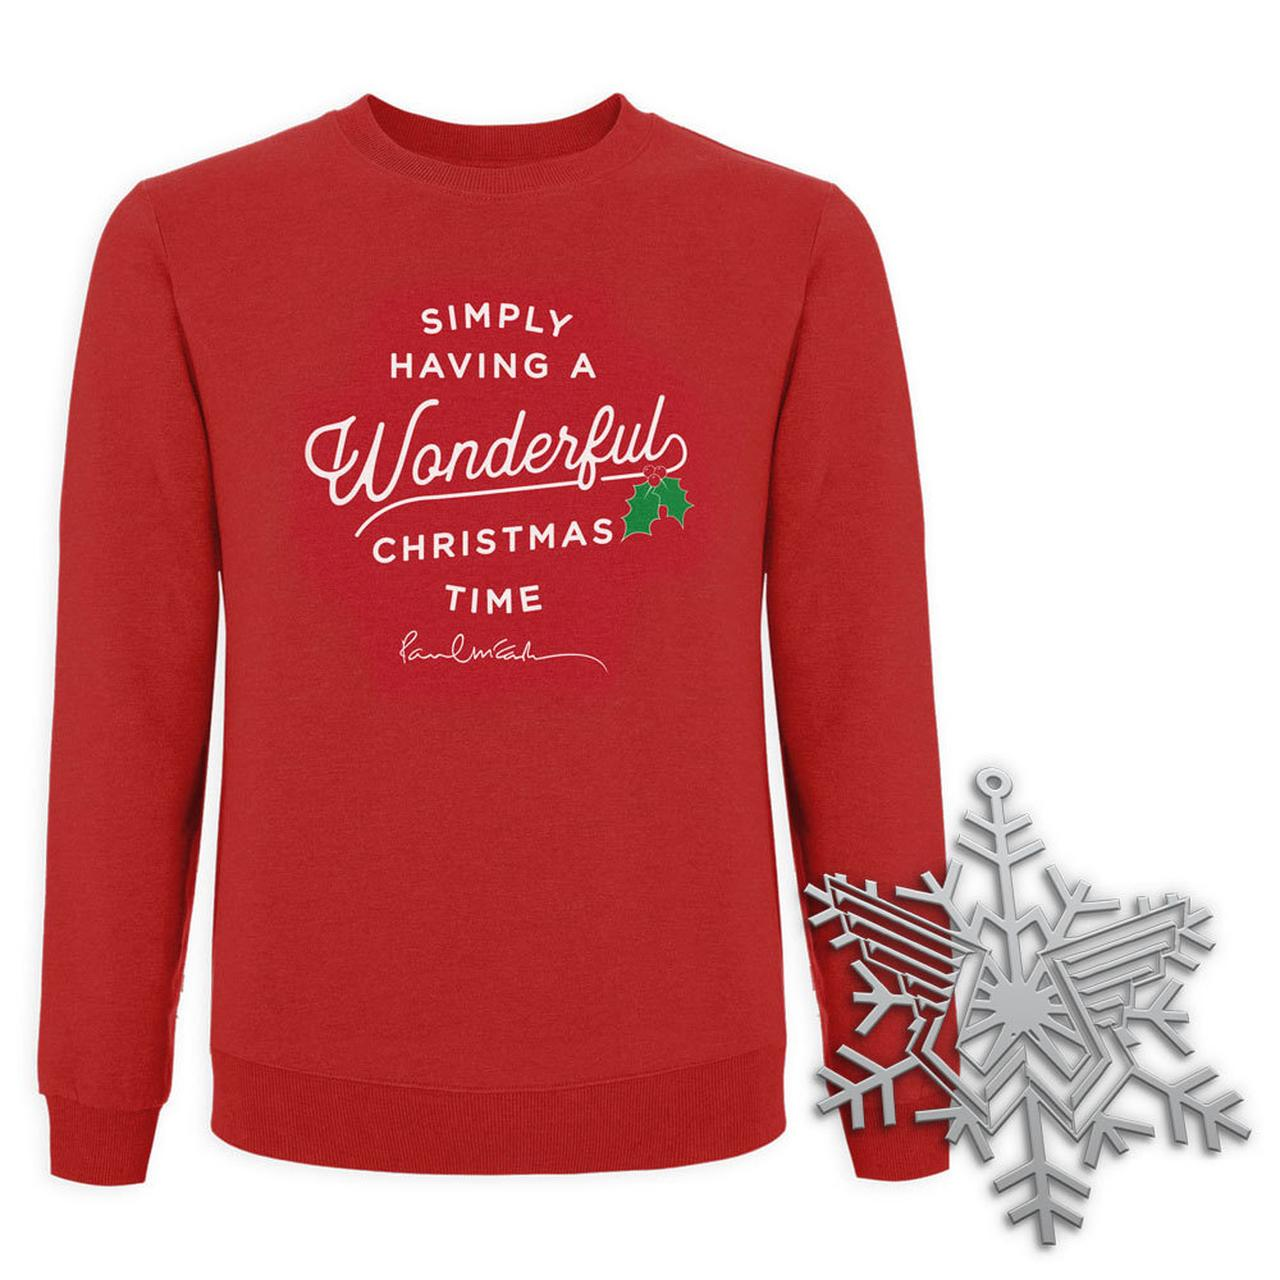 paul mccartney wonderful christmas time sweatshirt and ornament bundle tap to expand - Simply Having A Wonderful Christmas Time